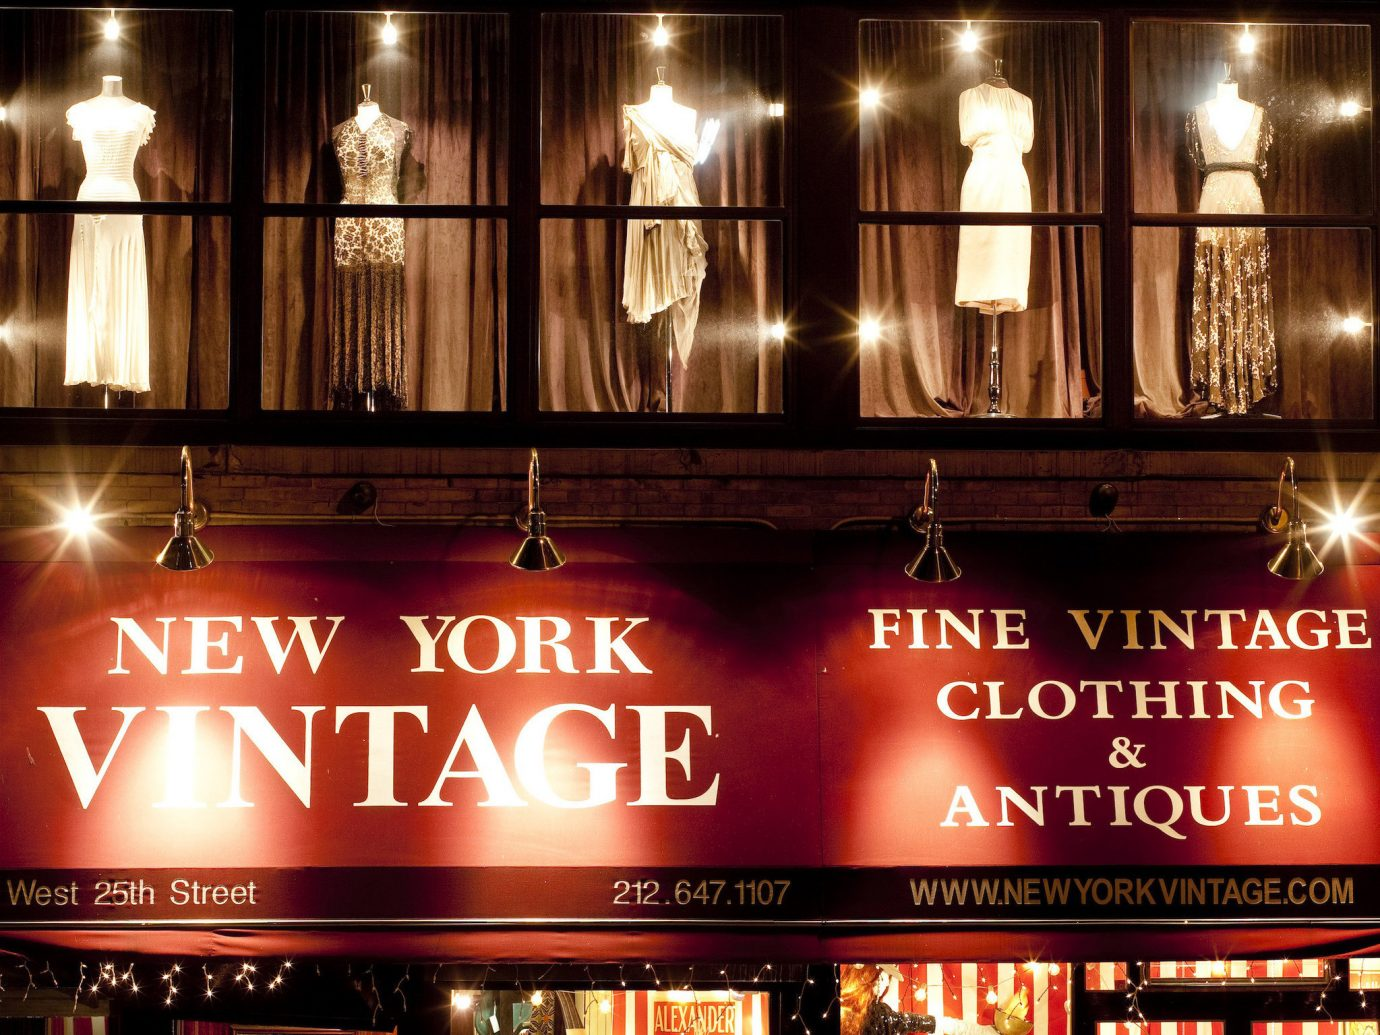 NYC Shops Style + Design night lighting display window restaurant Bar window City café